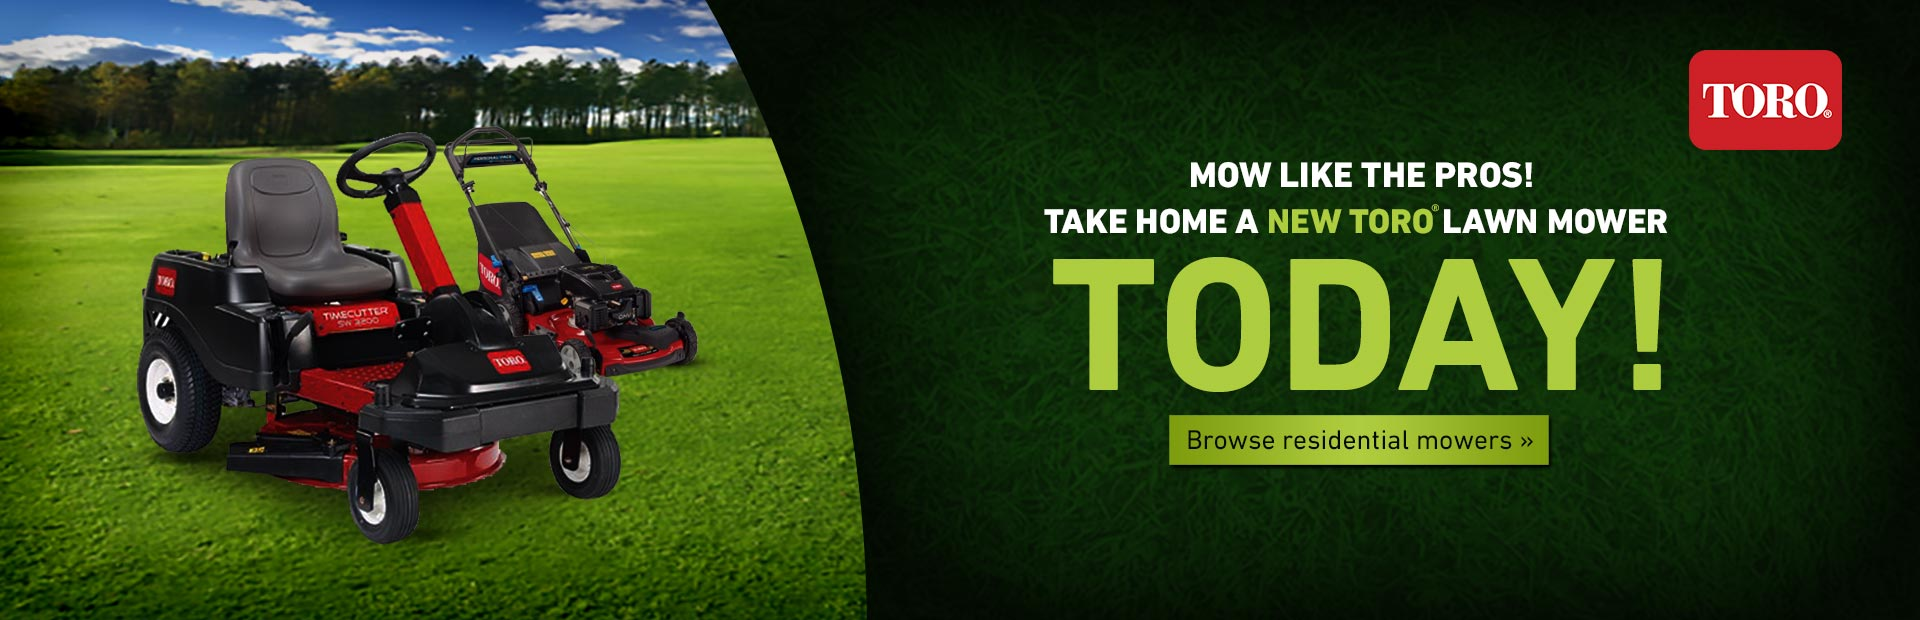 Click here to view Toro residential mowers!